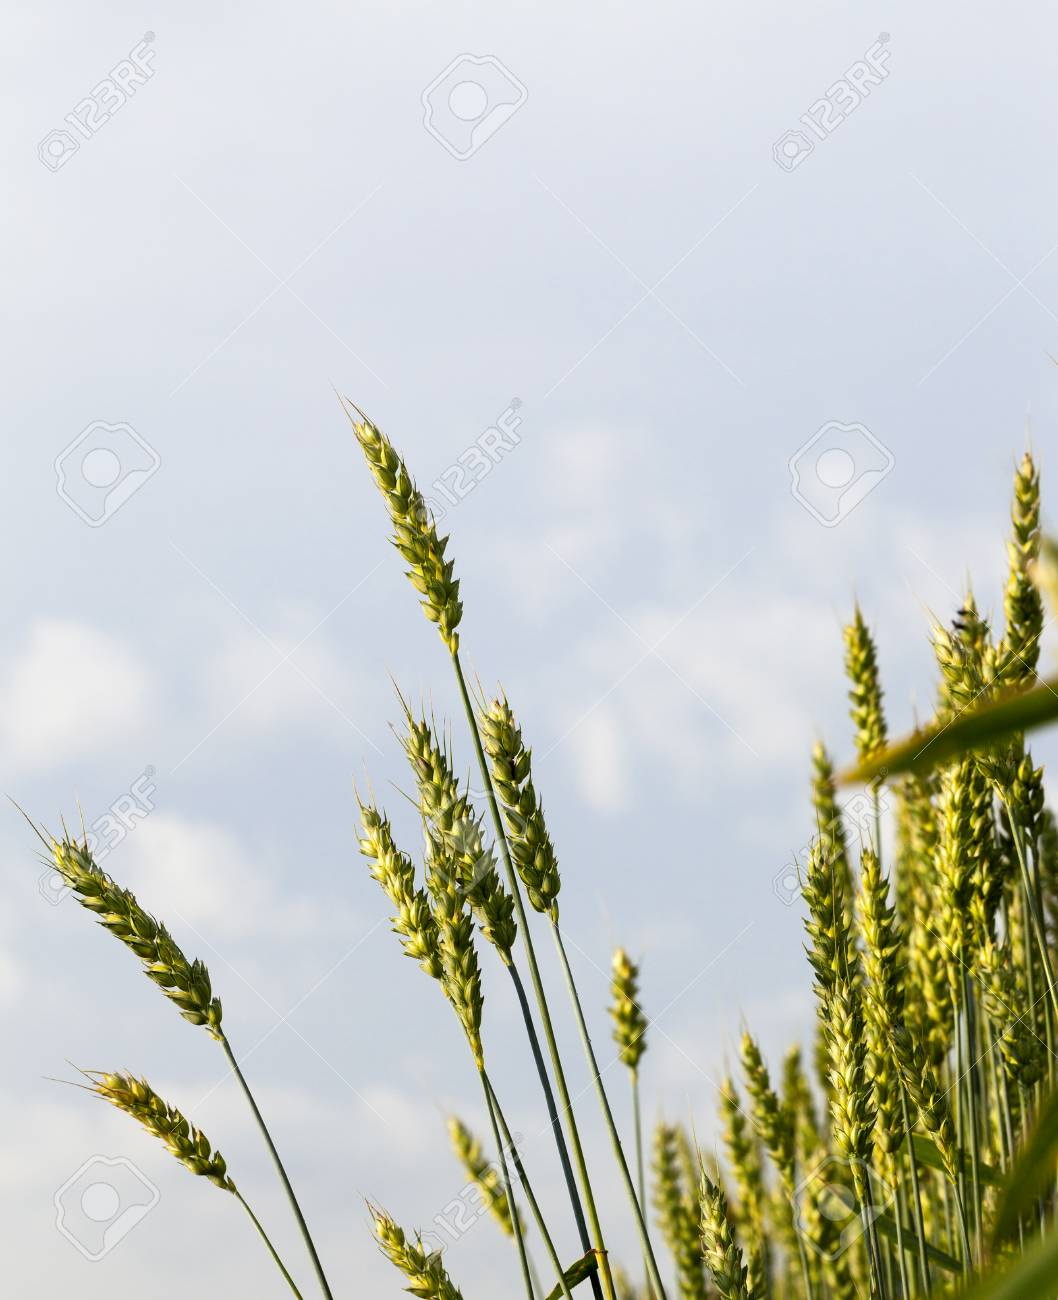 immature green wheat against a blue sky with clouds. photo close-up in spring or summer - 87834680